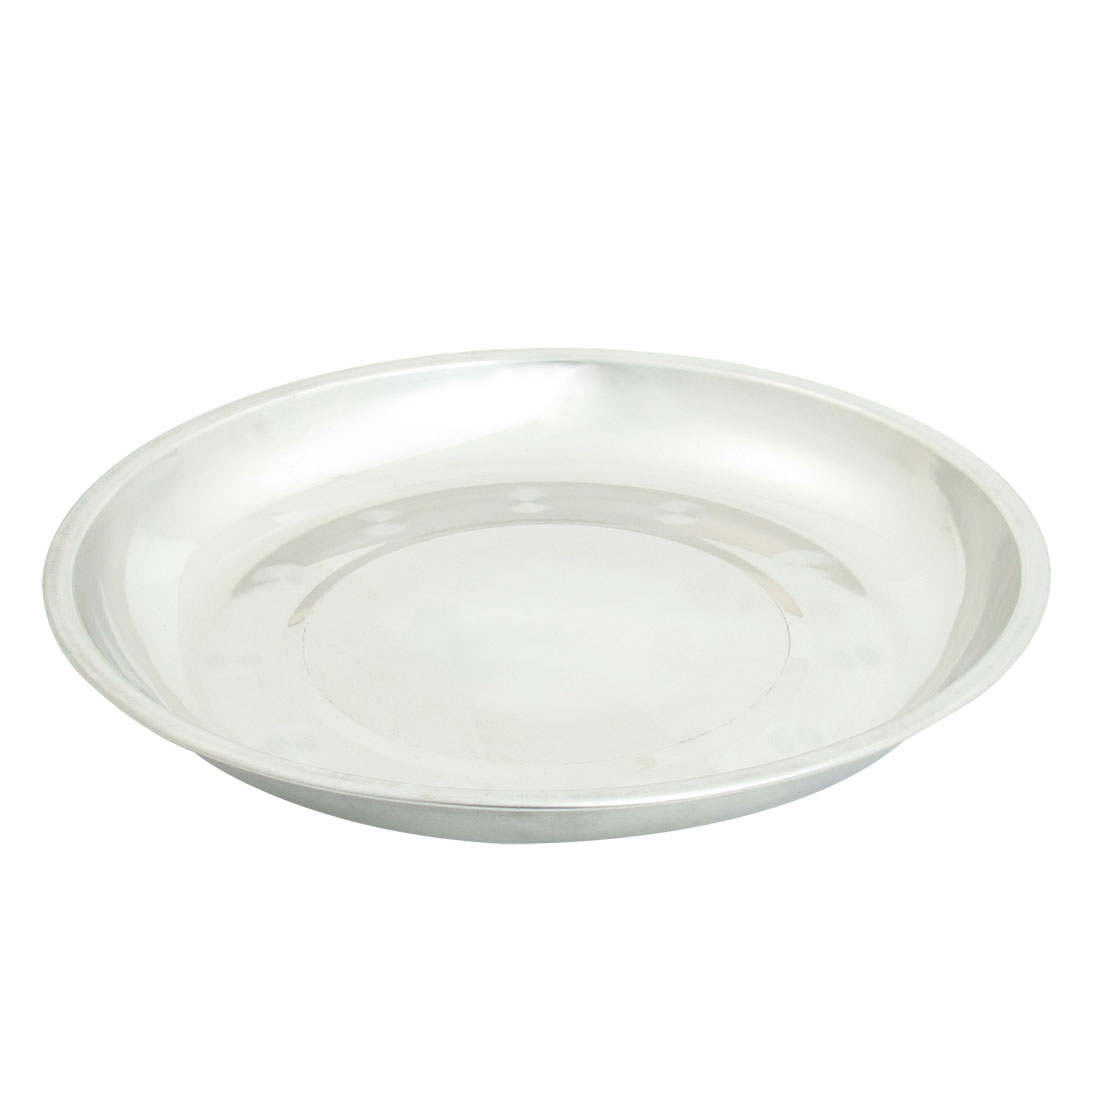 "6.1"" Diameter Silver Tone Strainless Steel Vegetables Dish Plate"